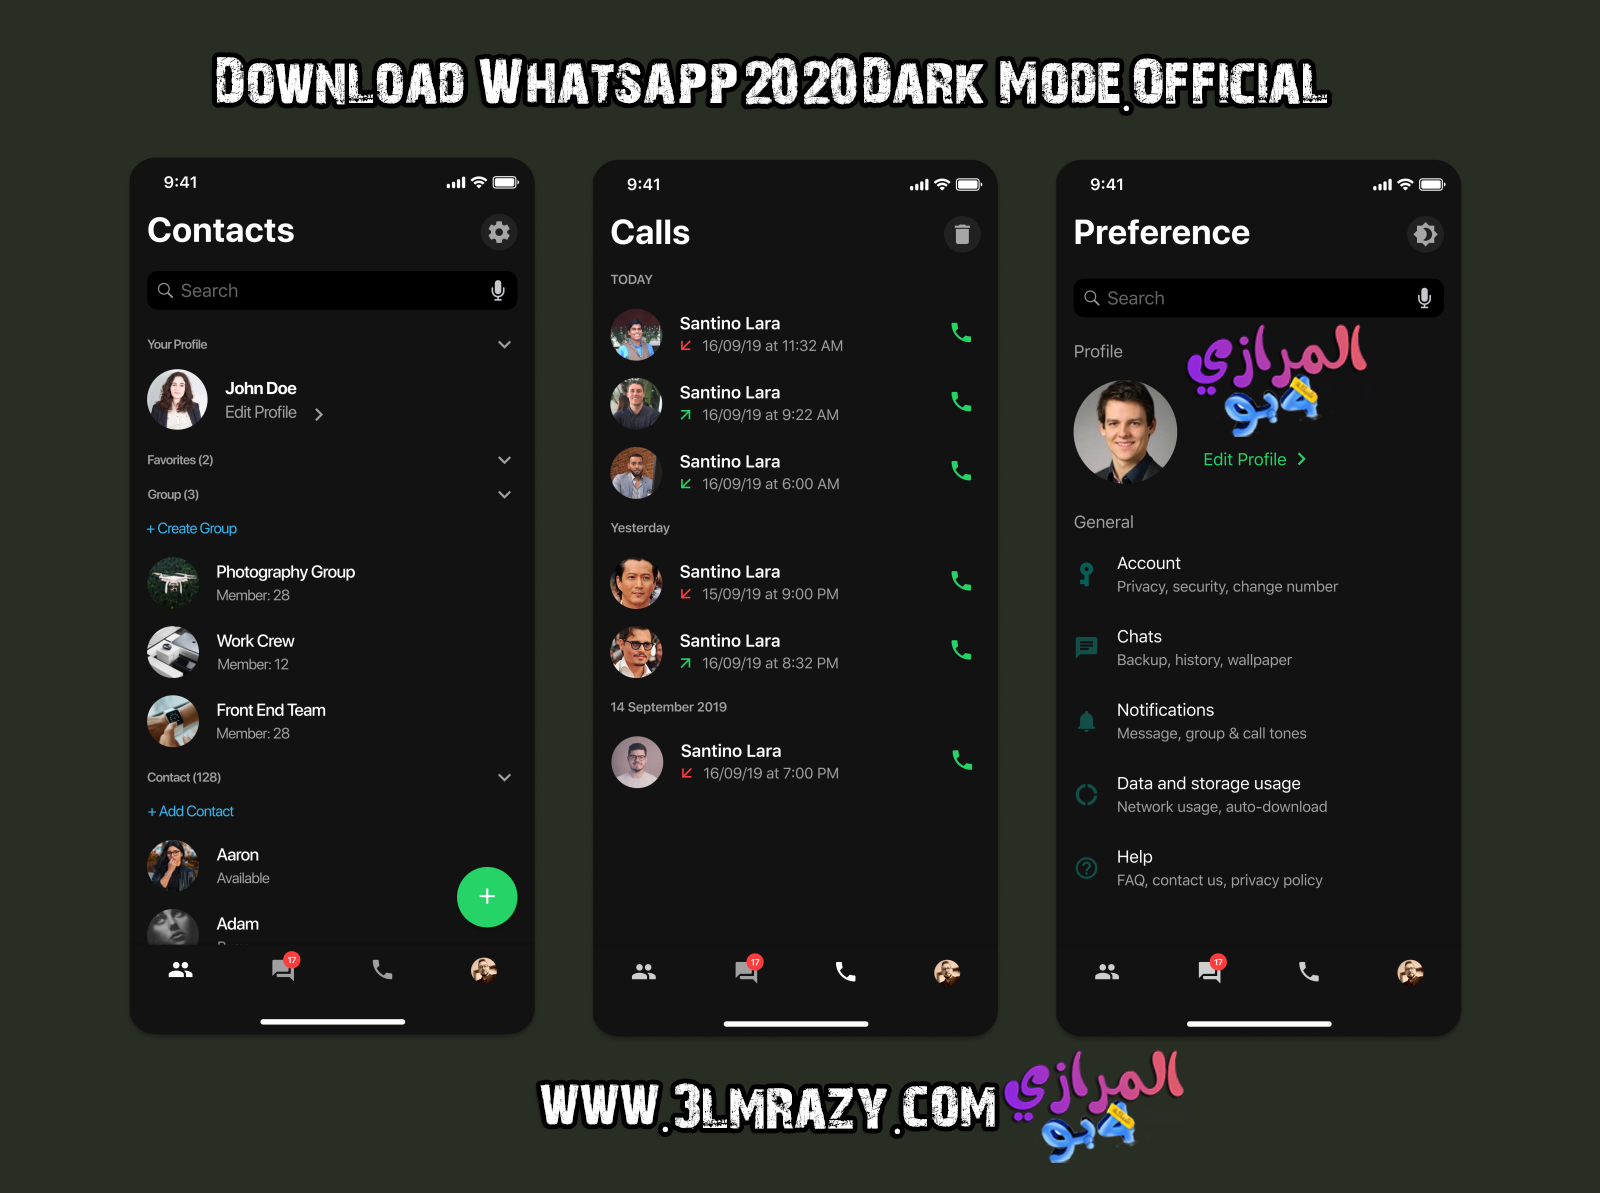 Download Whatsapp 2020 [Dark Mode] Official